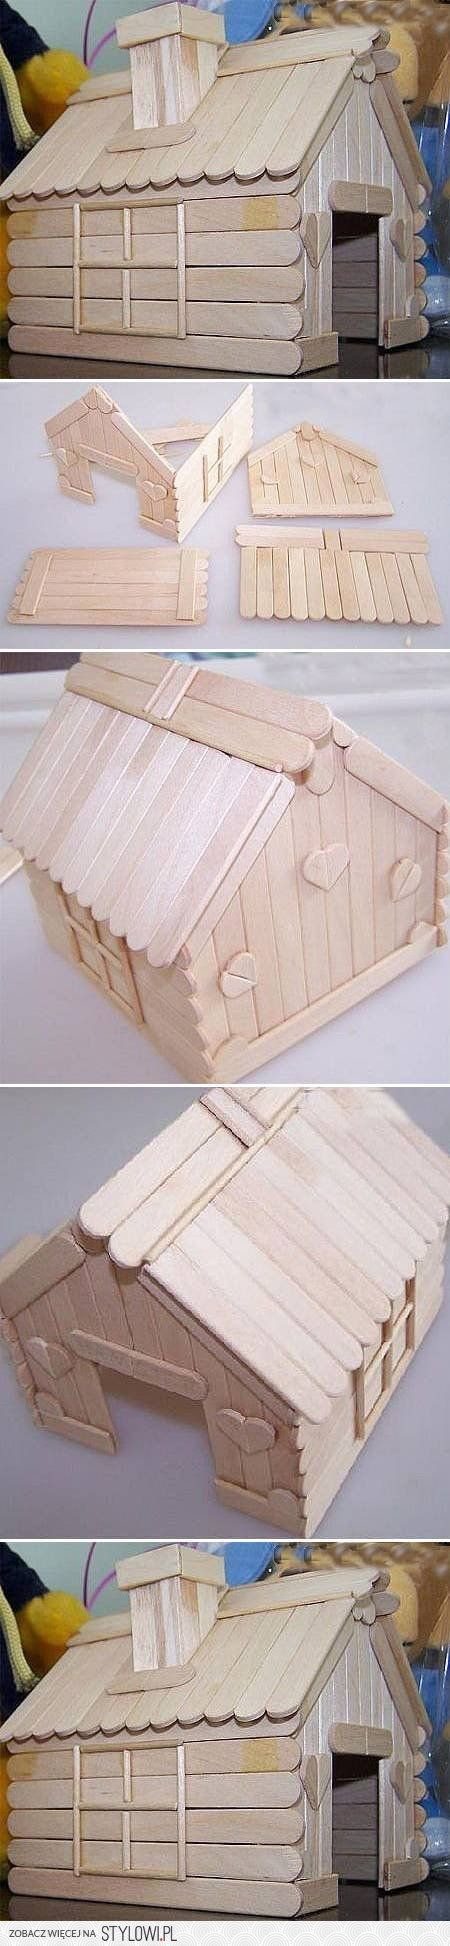 DIY Popsicle Stick House DIY Projects | UsefulDIY.com